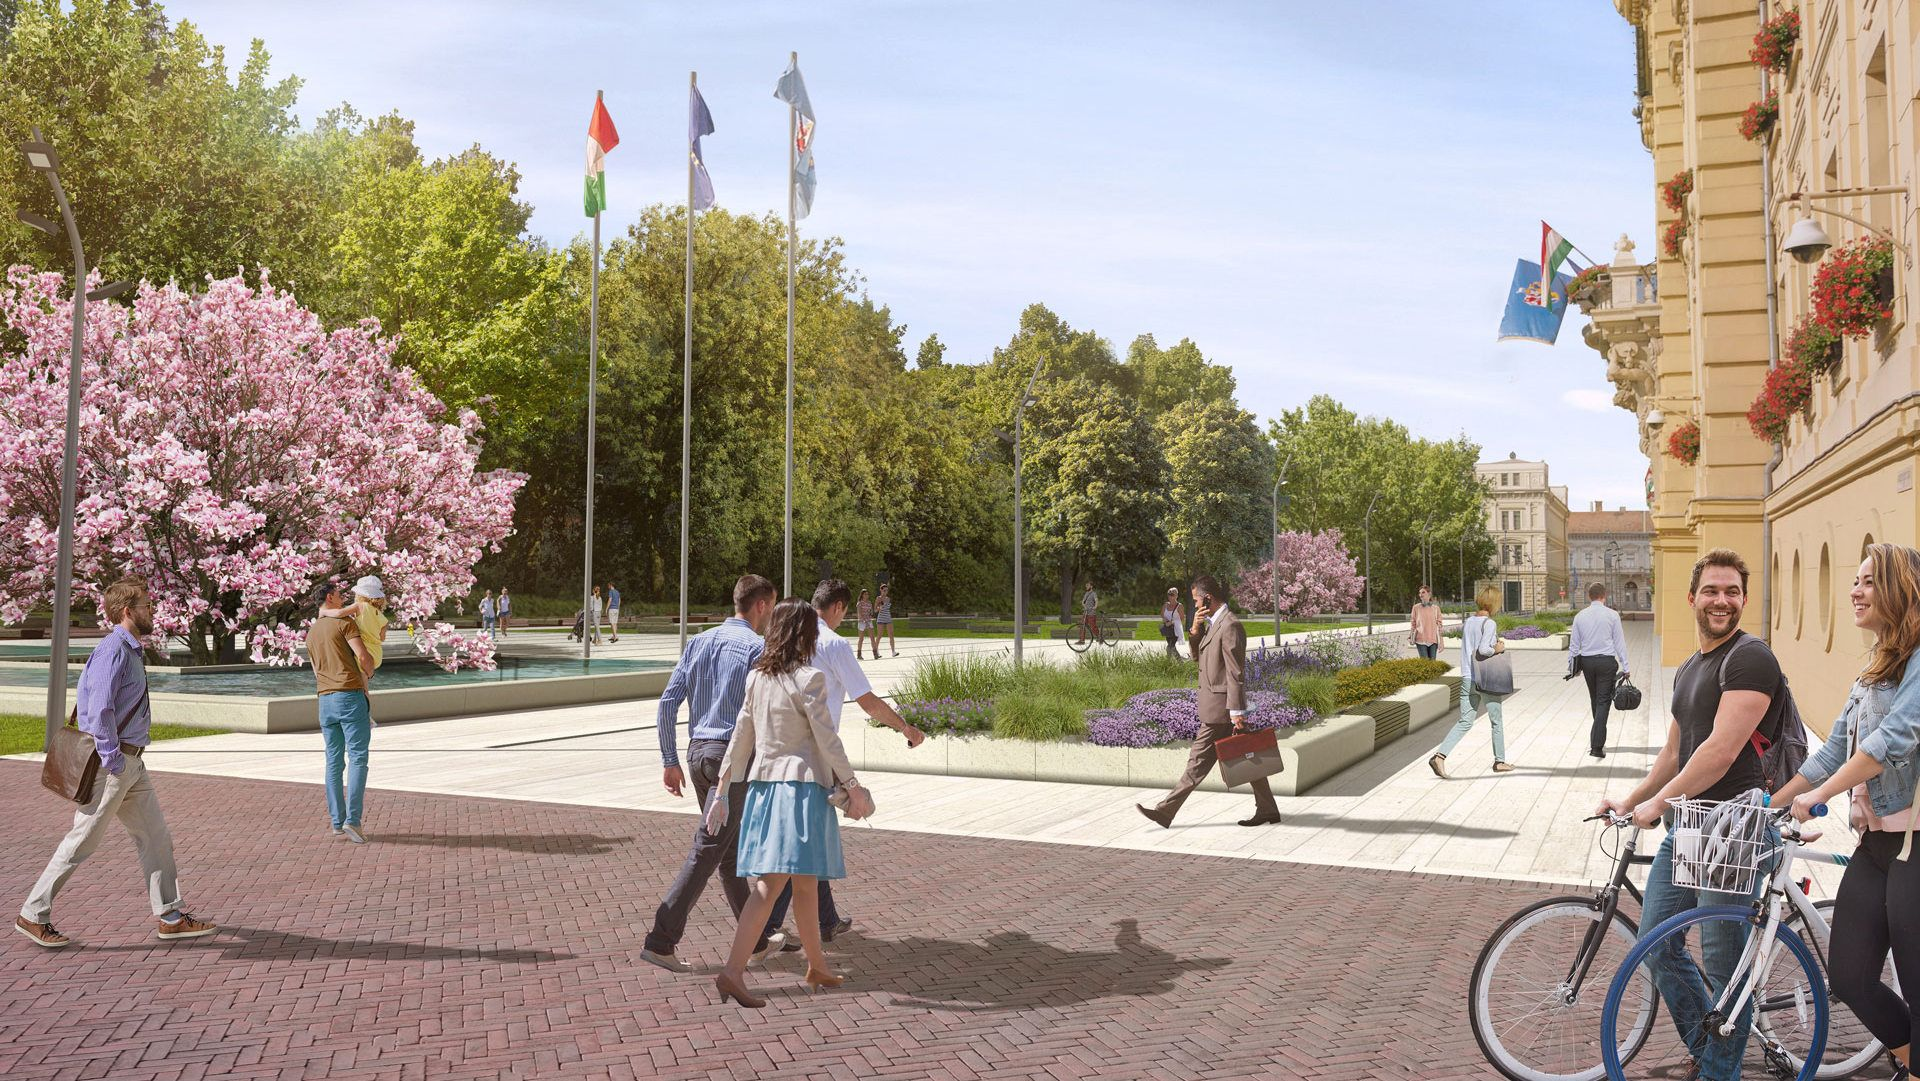 The Main Square in Szeged gets rebuilt with more greenery